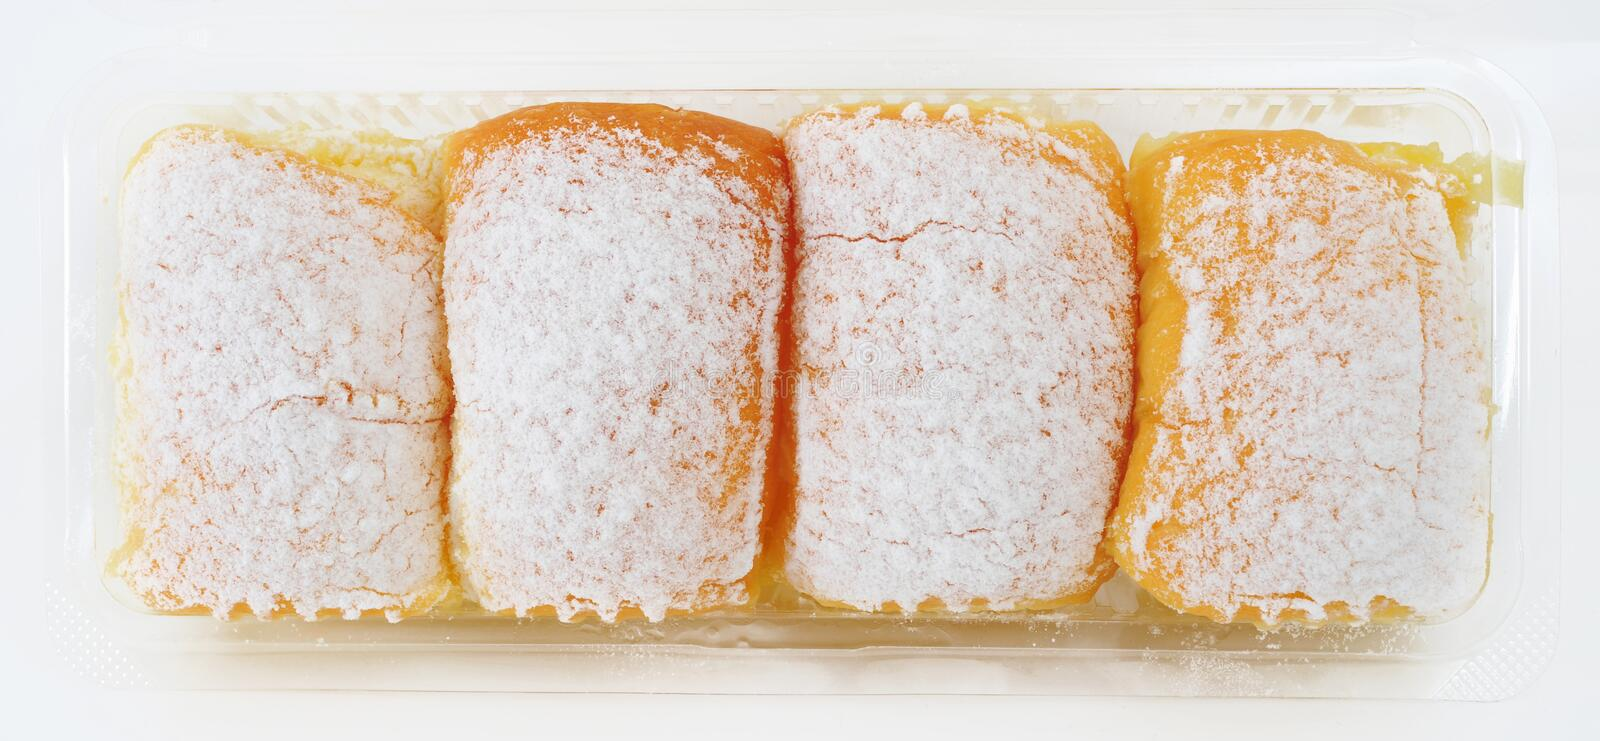 Download Bread with icing stock image. Image of sweet, sugar, drink - 29392899